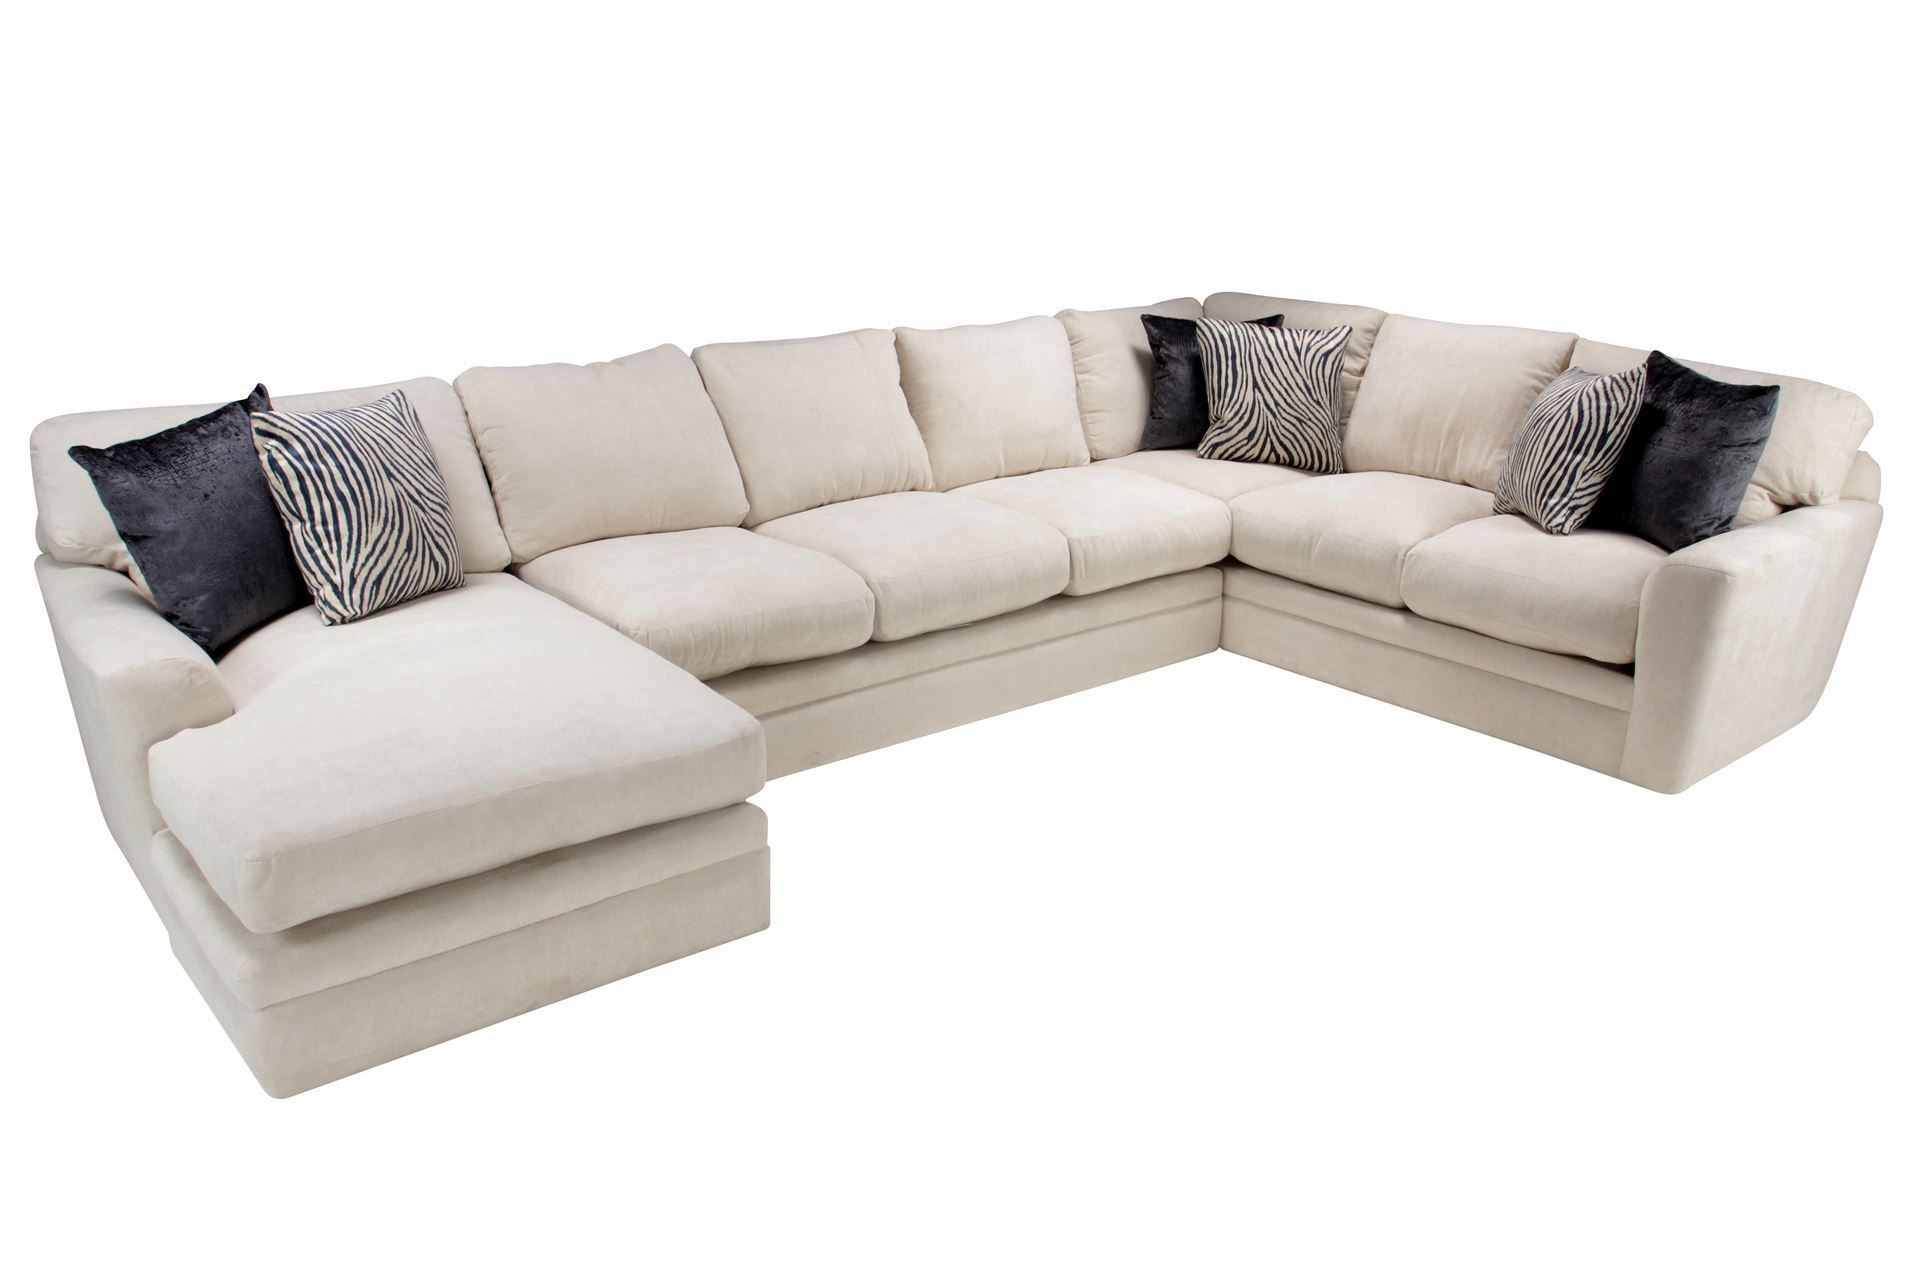 Glamour 3 Piece Sectional - Signature | 121 Plan Great Room ...